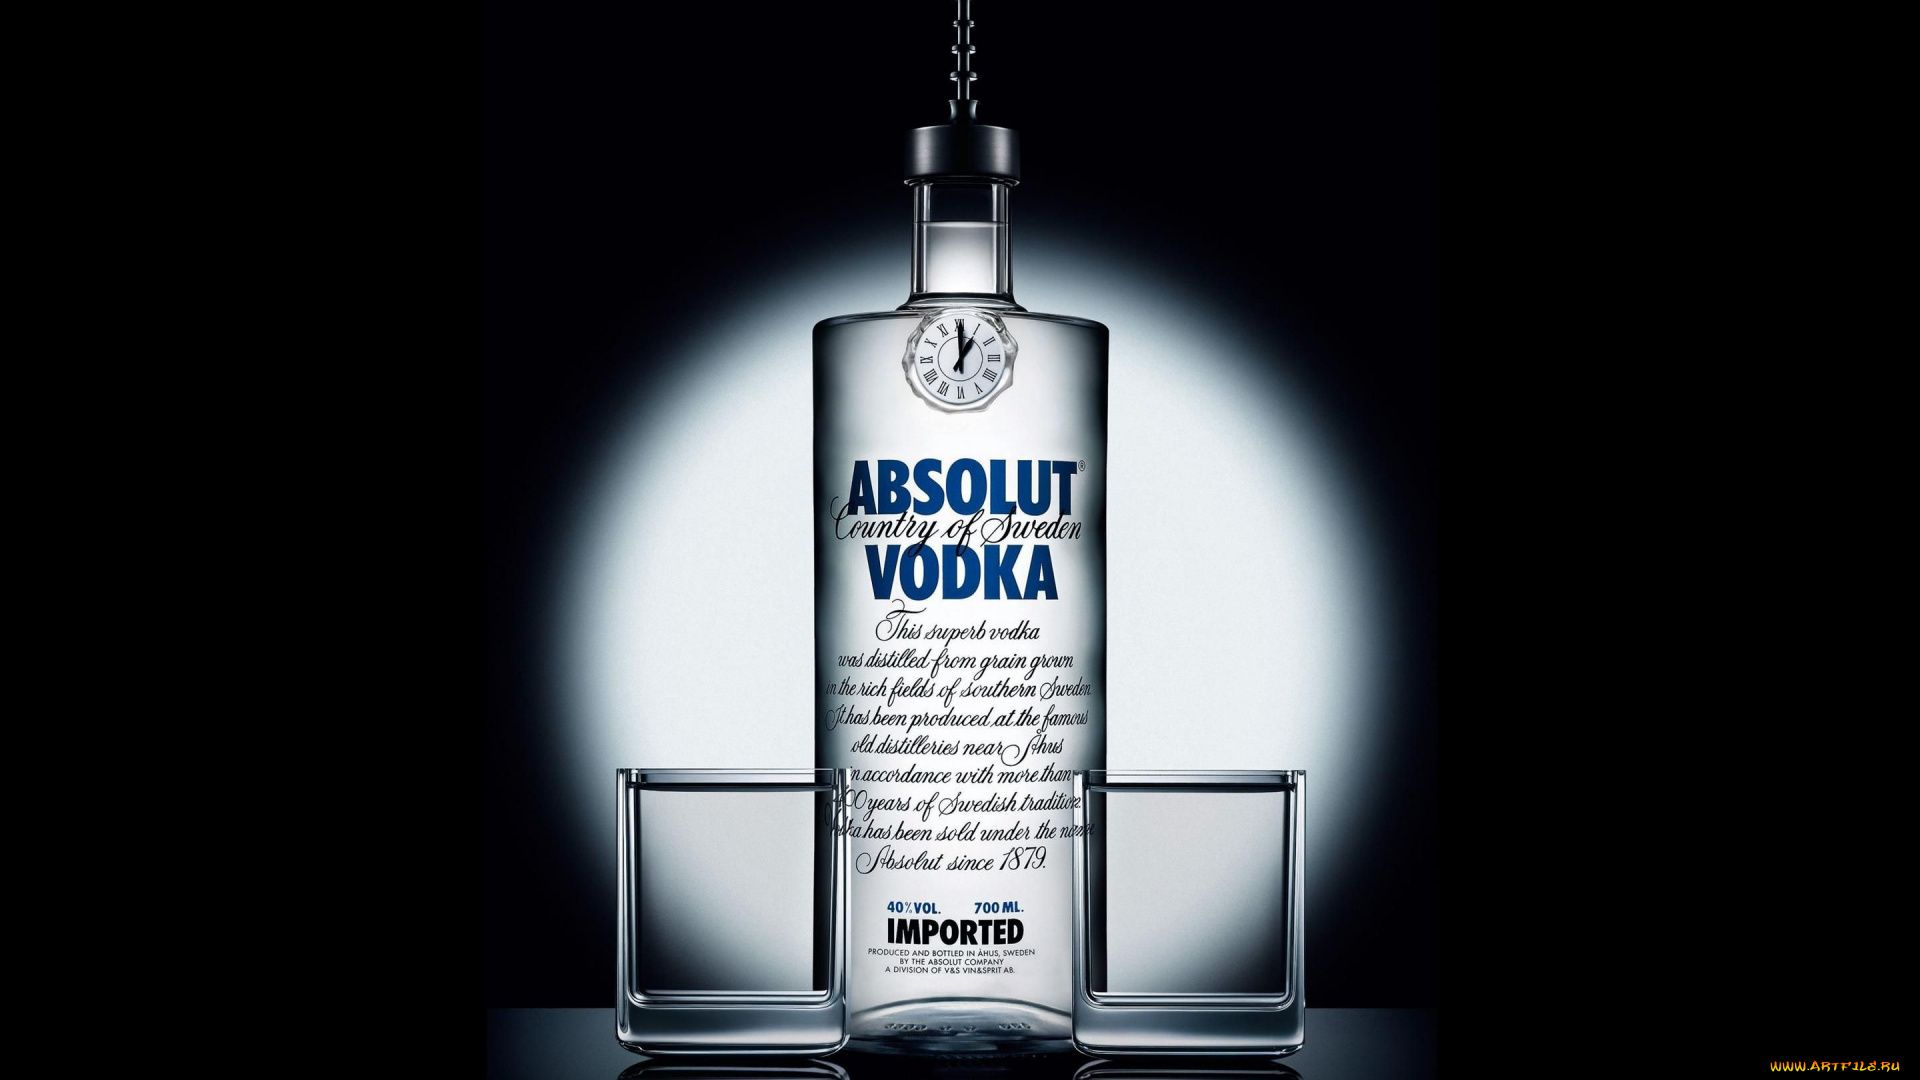 Absolut Vodka Pictures, Absolut Vodka Brand Wallpaper